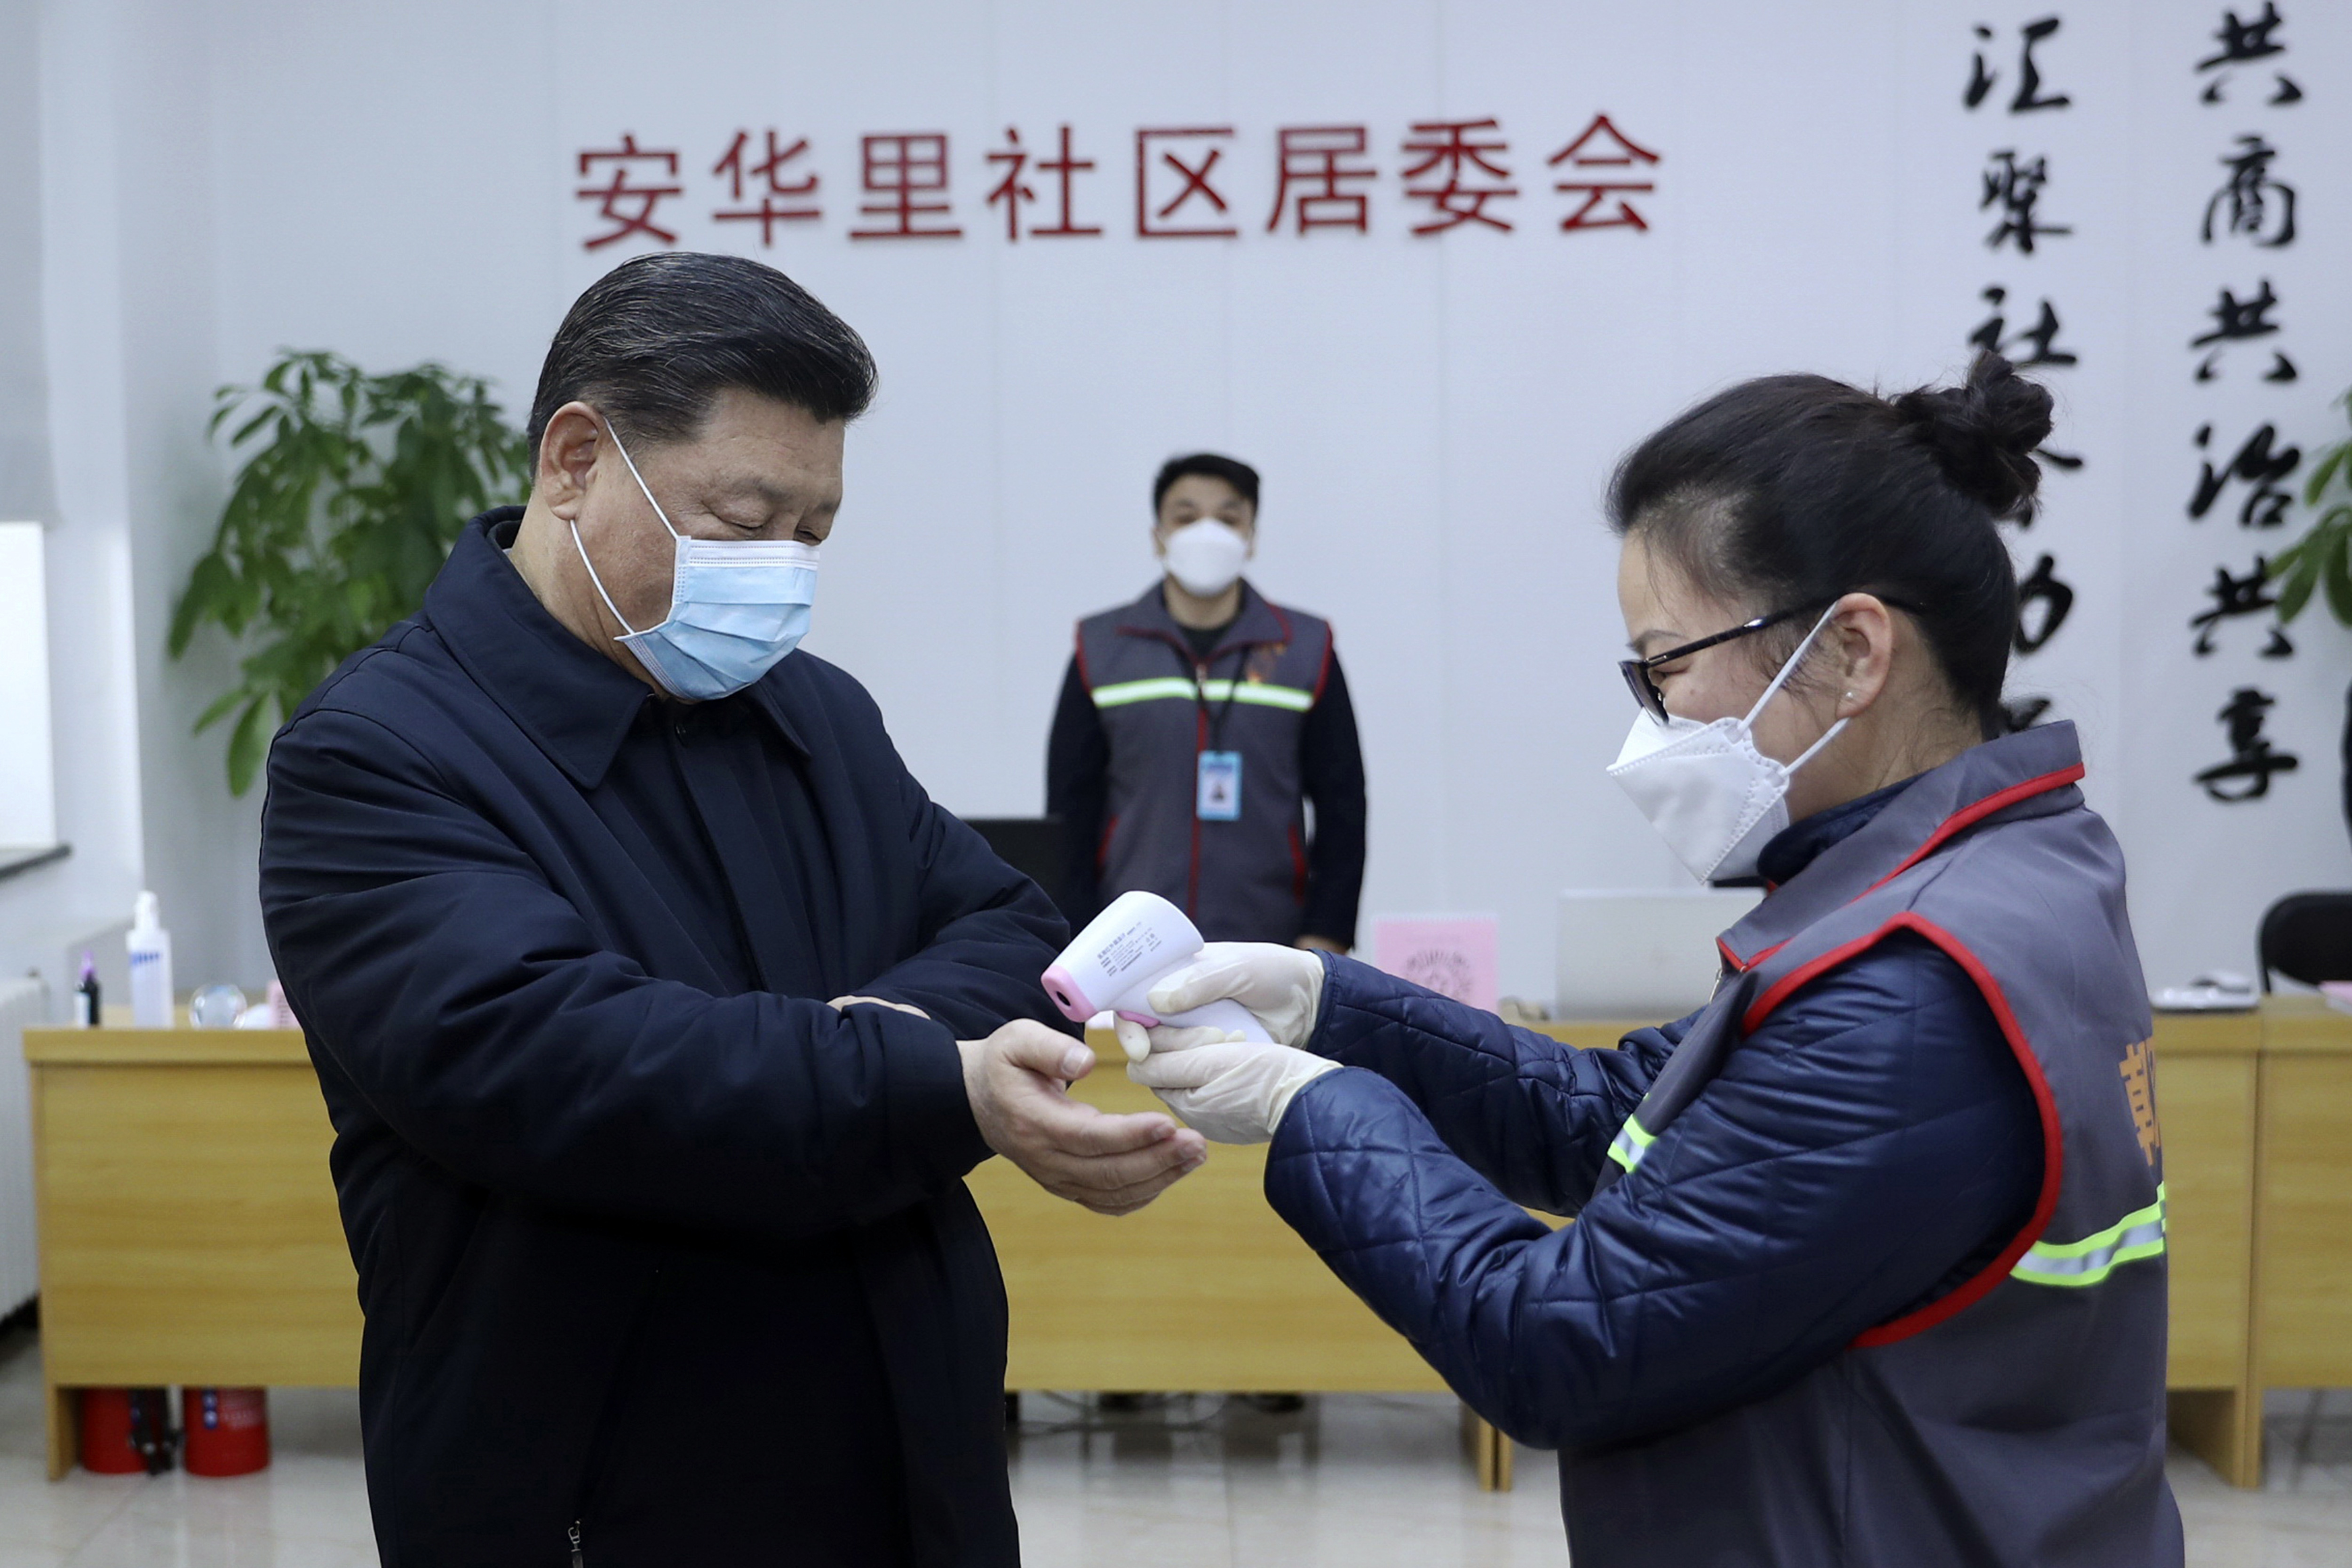 Xi Jinping (left) wearing a protective face mask, receives a temperature check as he visits a community health center in Beijing on Monday